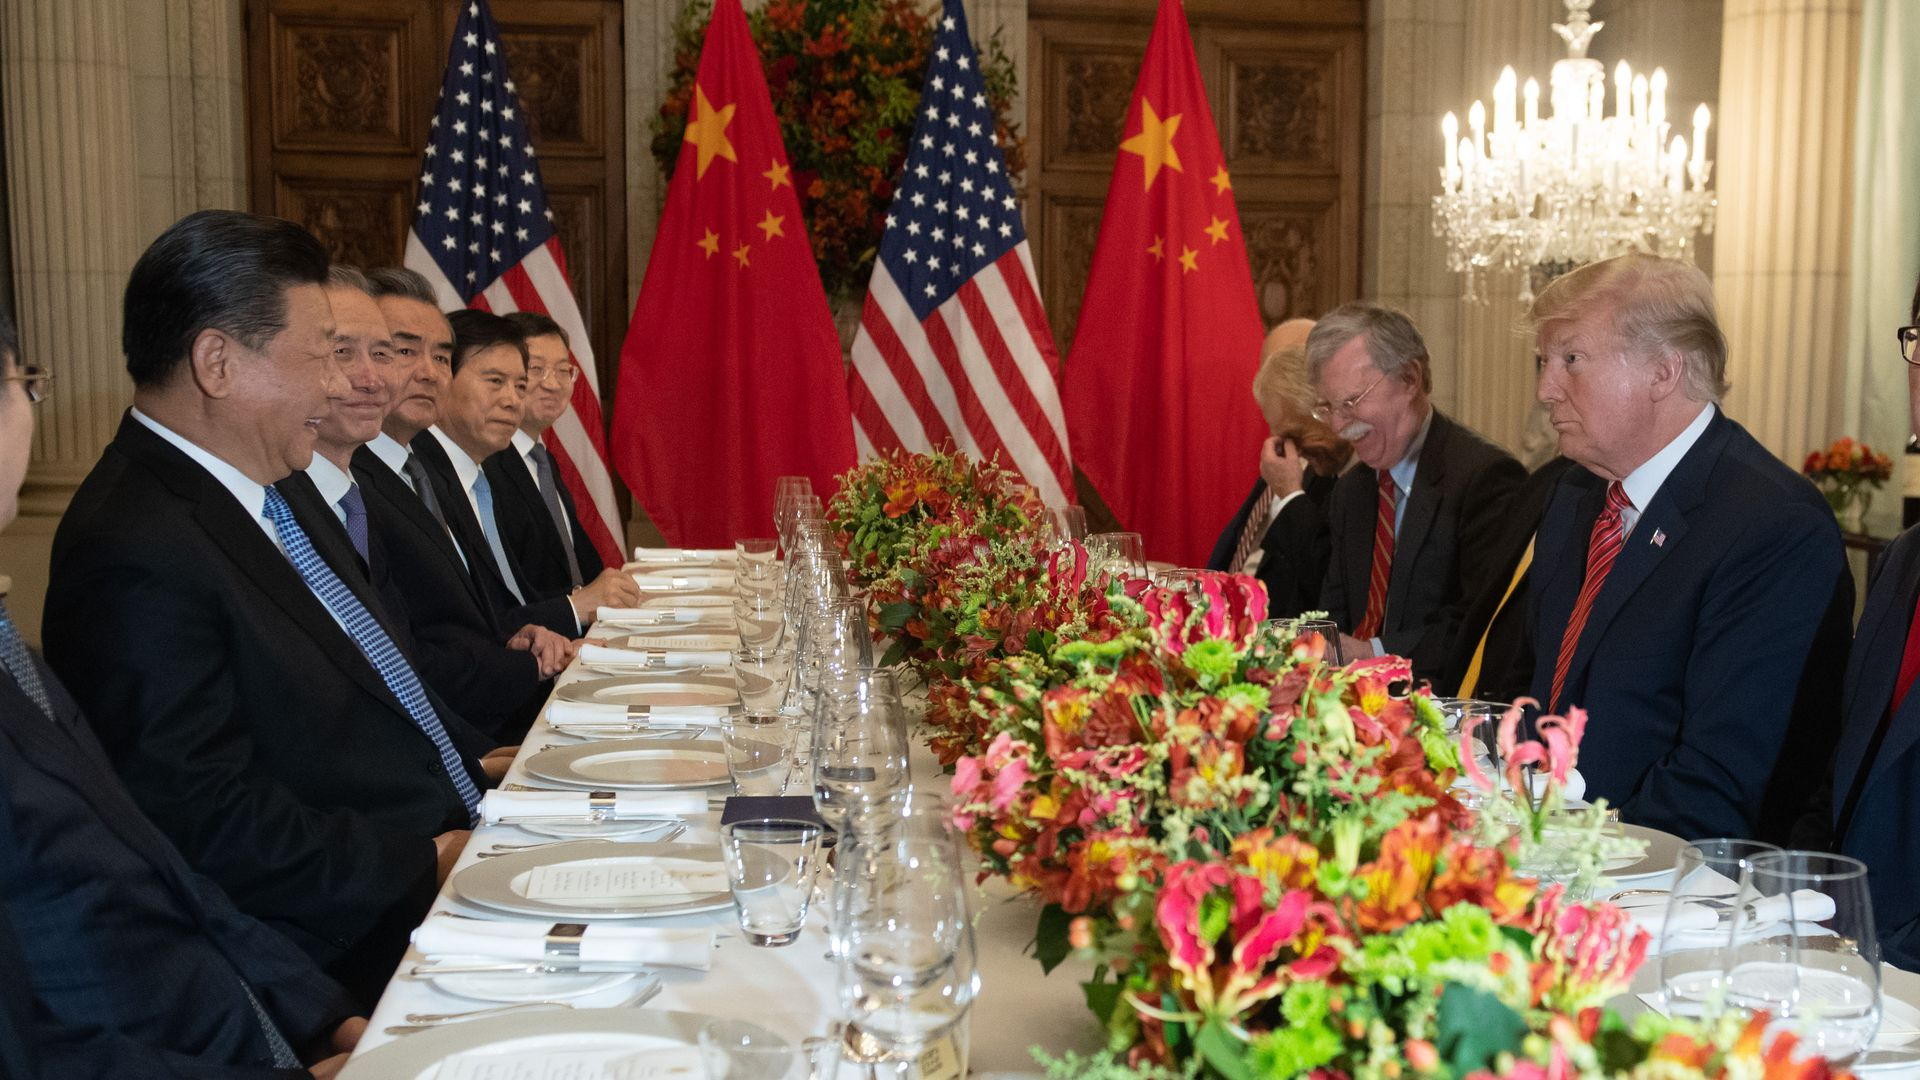 US President Donald Trump (R) and China's President Xi Jinping (L) along with members of their delegations, hold a dinner meeting at the end of the G20 summit.